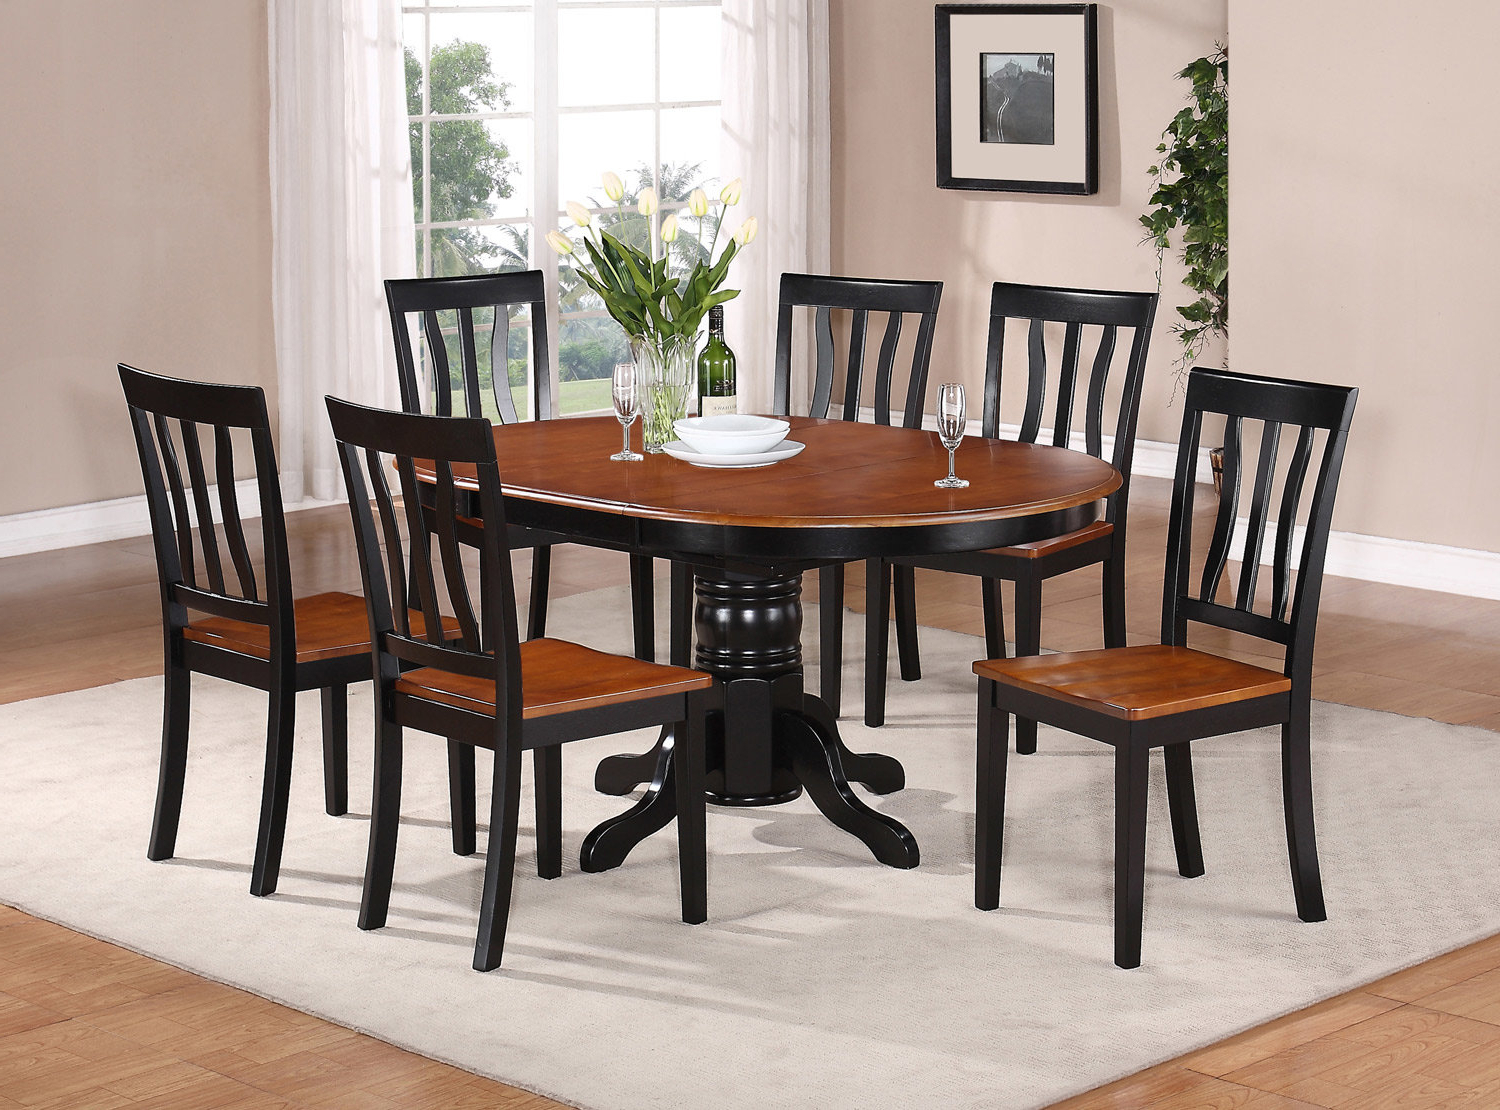 Most Current Pattonsburg 5 Piece Dining Sets For Spurling 7 Piece Drop Leaf Solid Wood Dining Set & Reviews (View 21 of 25)